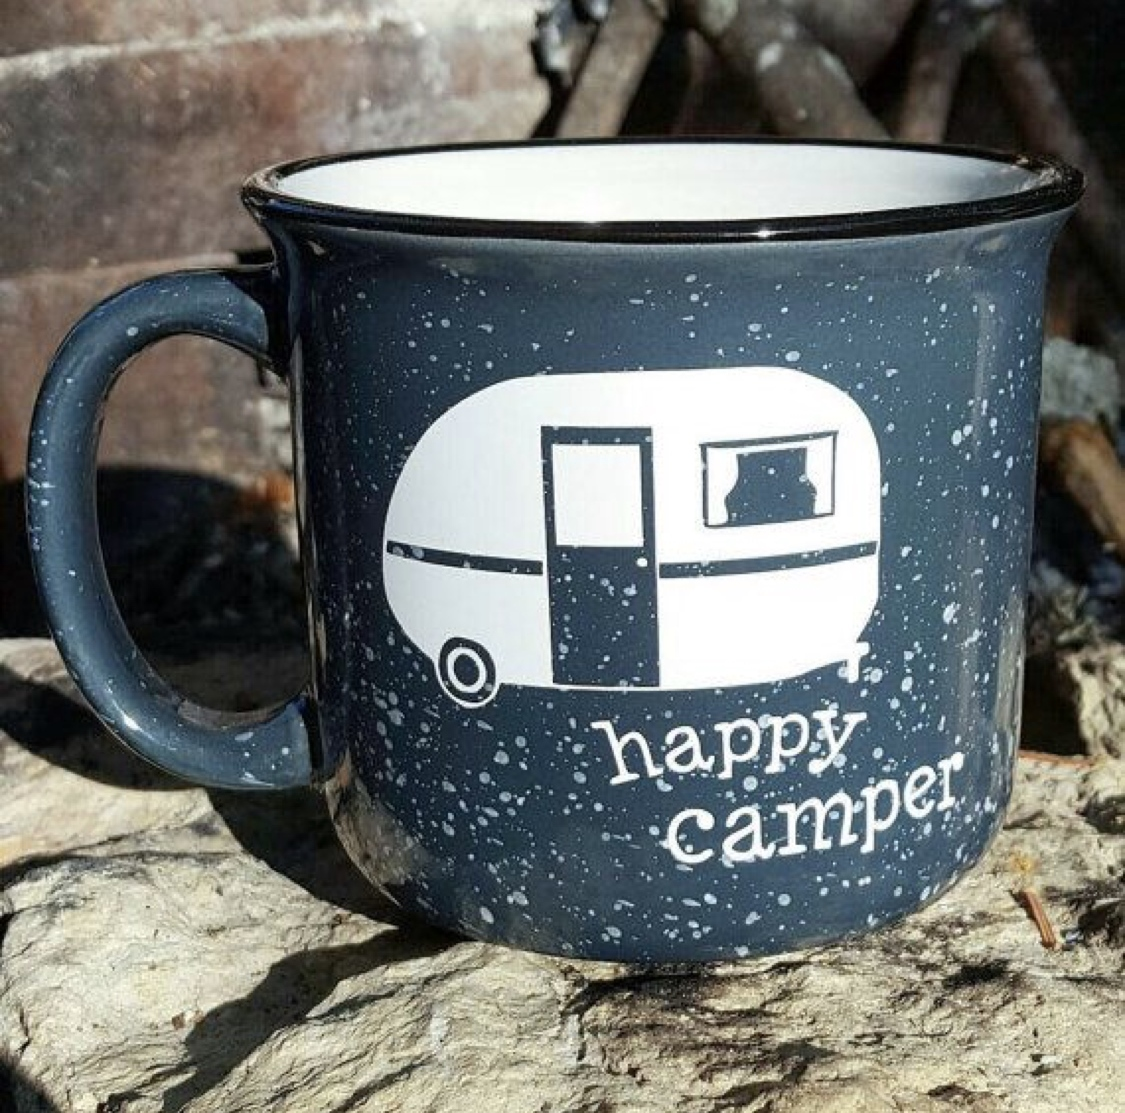 Customer review - We rented two, one for our family, our friends in the other. We showed up to our campsite with them side by side, completely set up and ready for use. Beautiful inside and out and made our camping trip an easy and relaxing vacation!!- Marco and Amelia Caracas